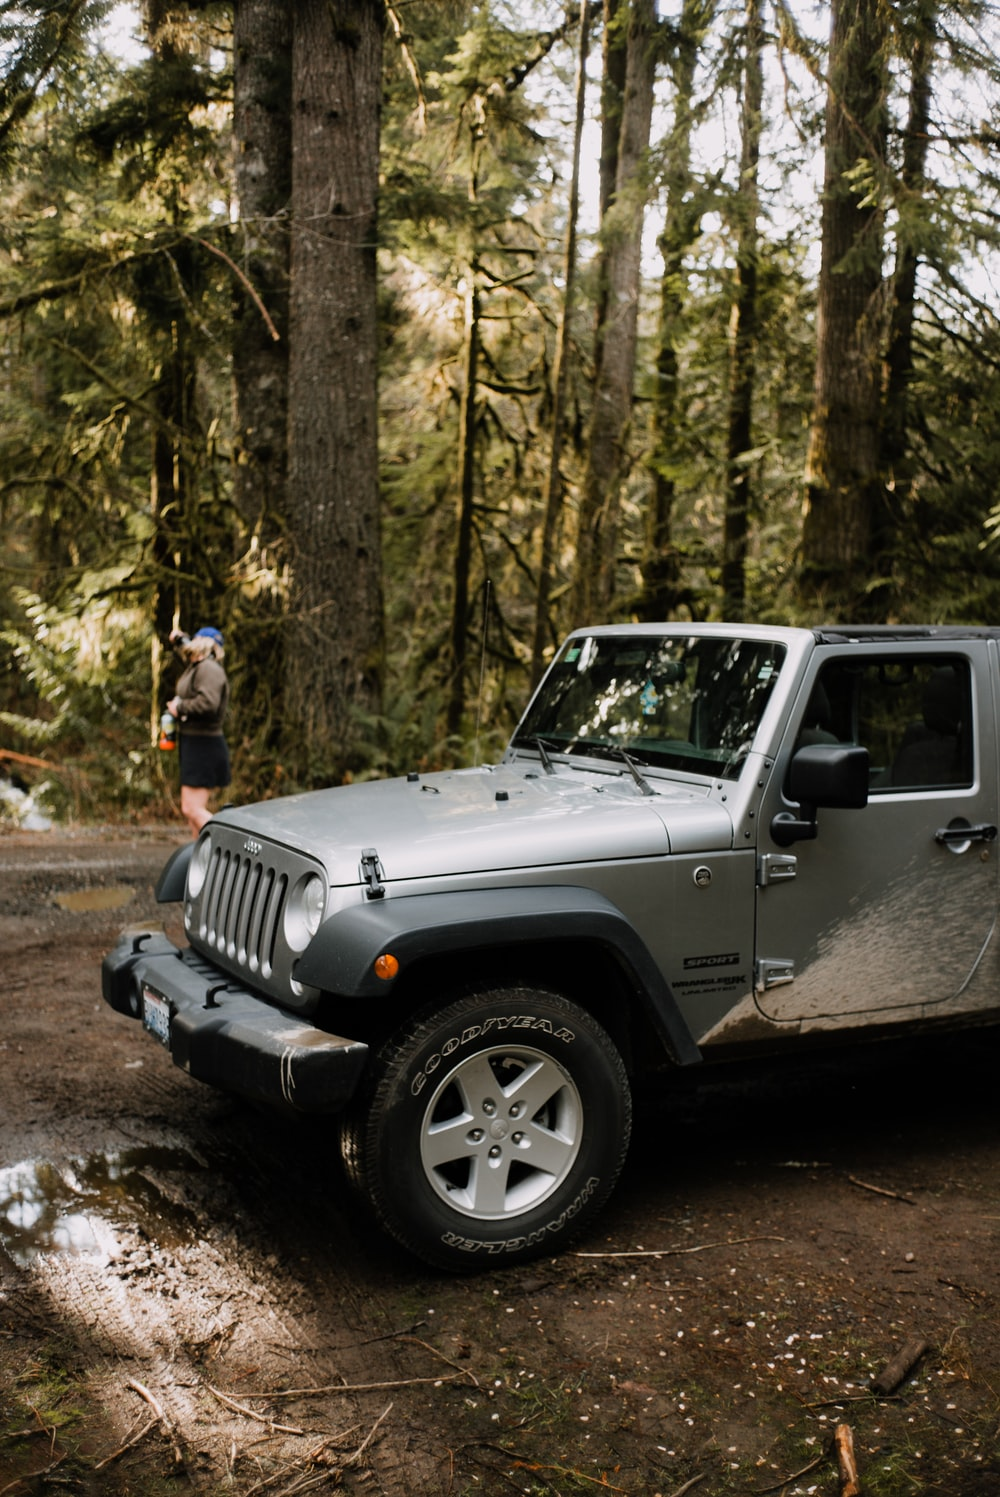 grey jeep wrangler parked near trees during daytime